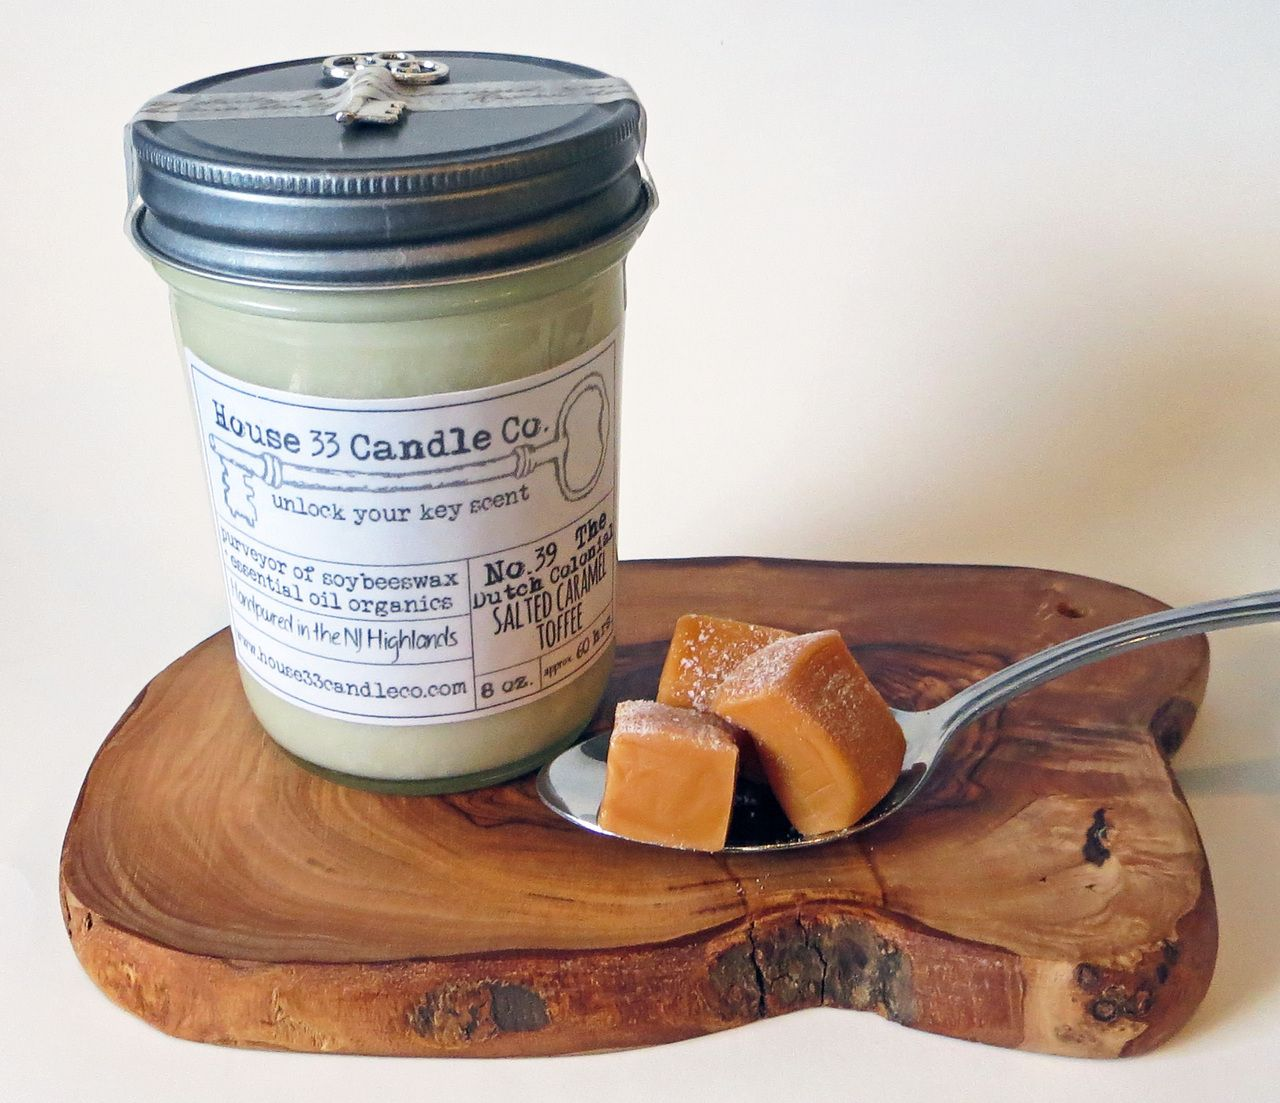 House 33 Candle Co. | organic soy beeswax candles scented with essential oils…